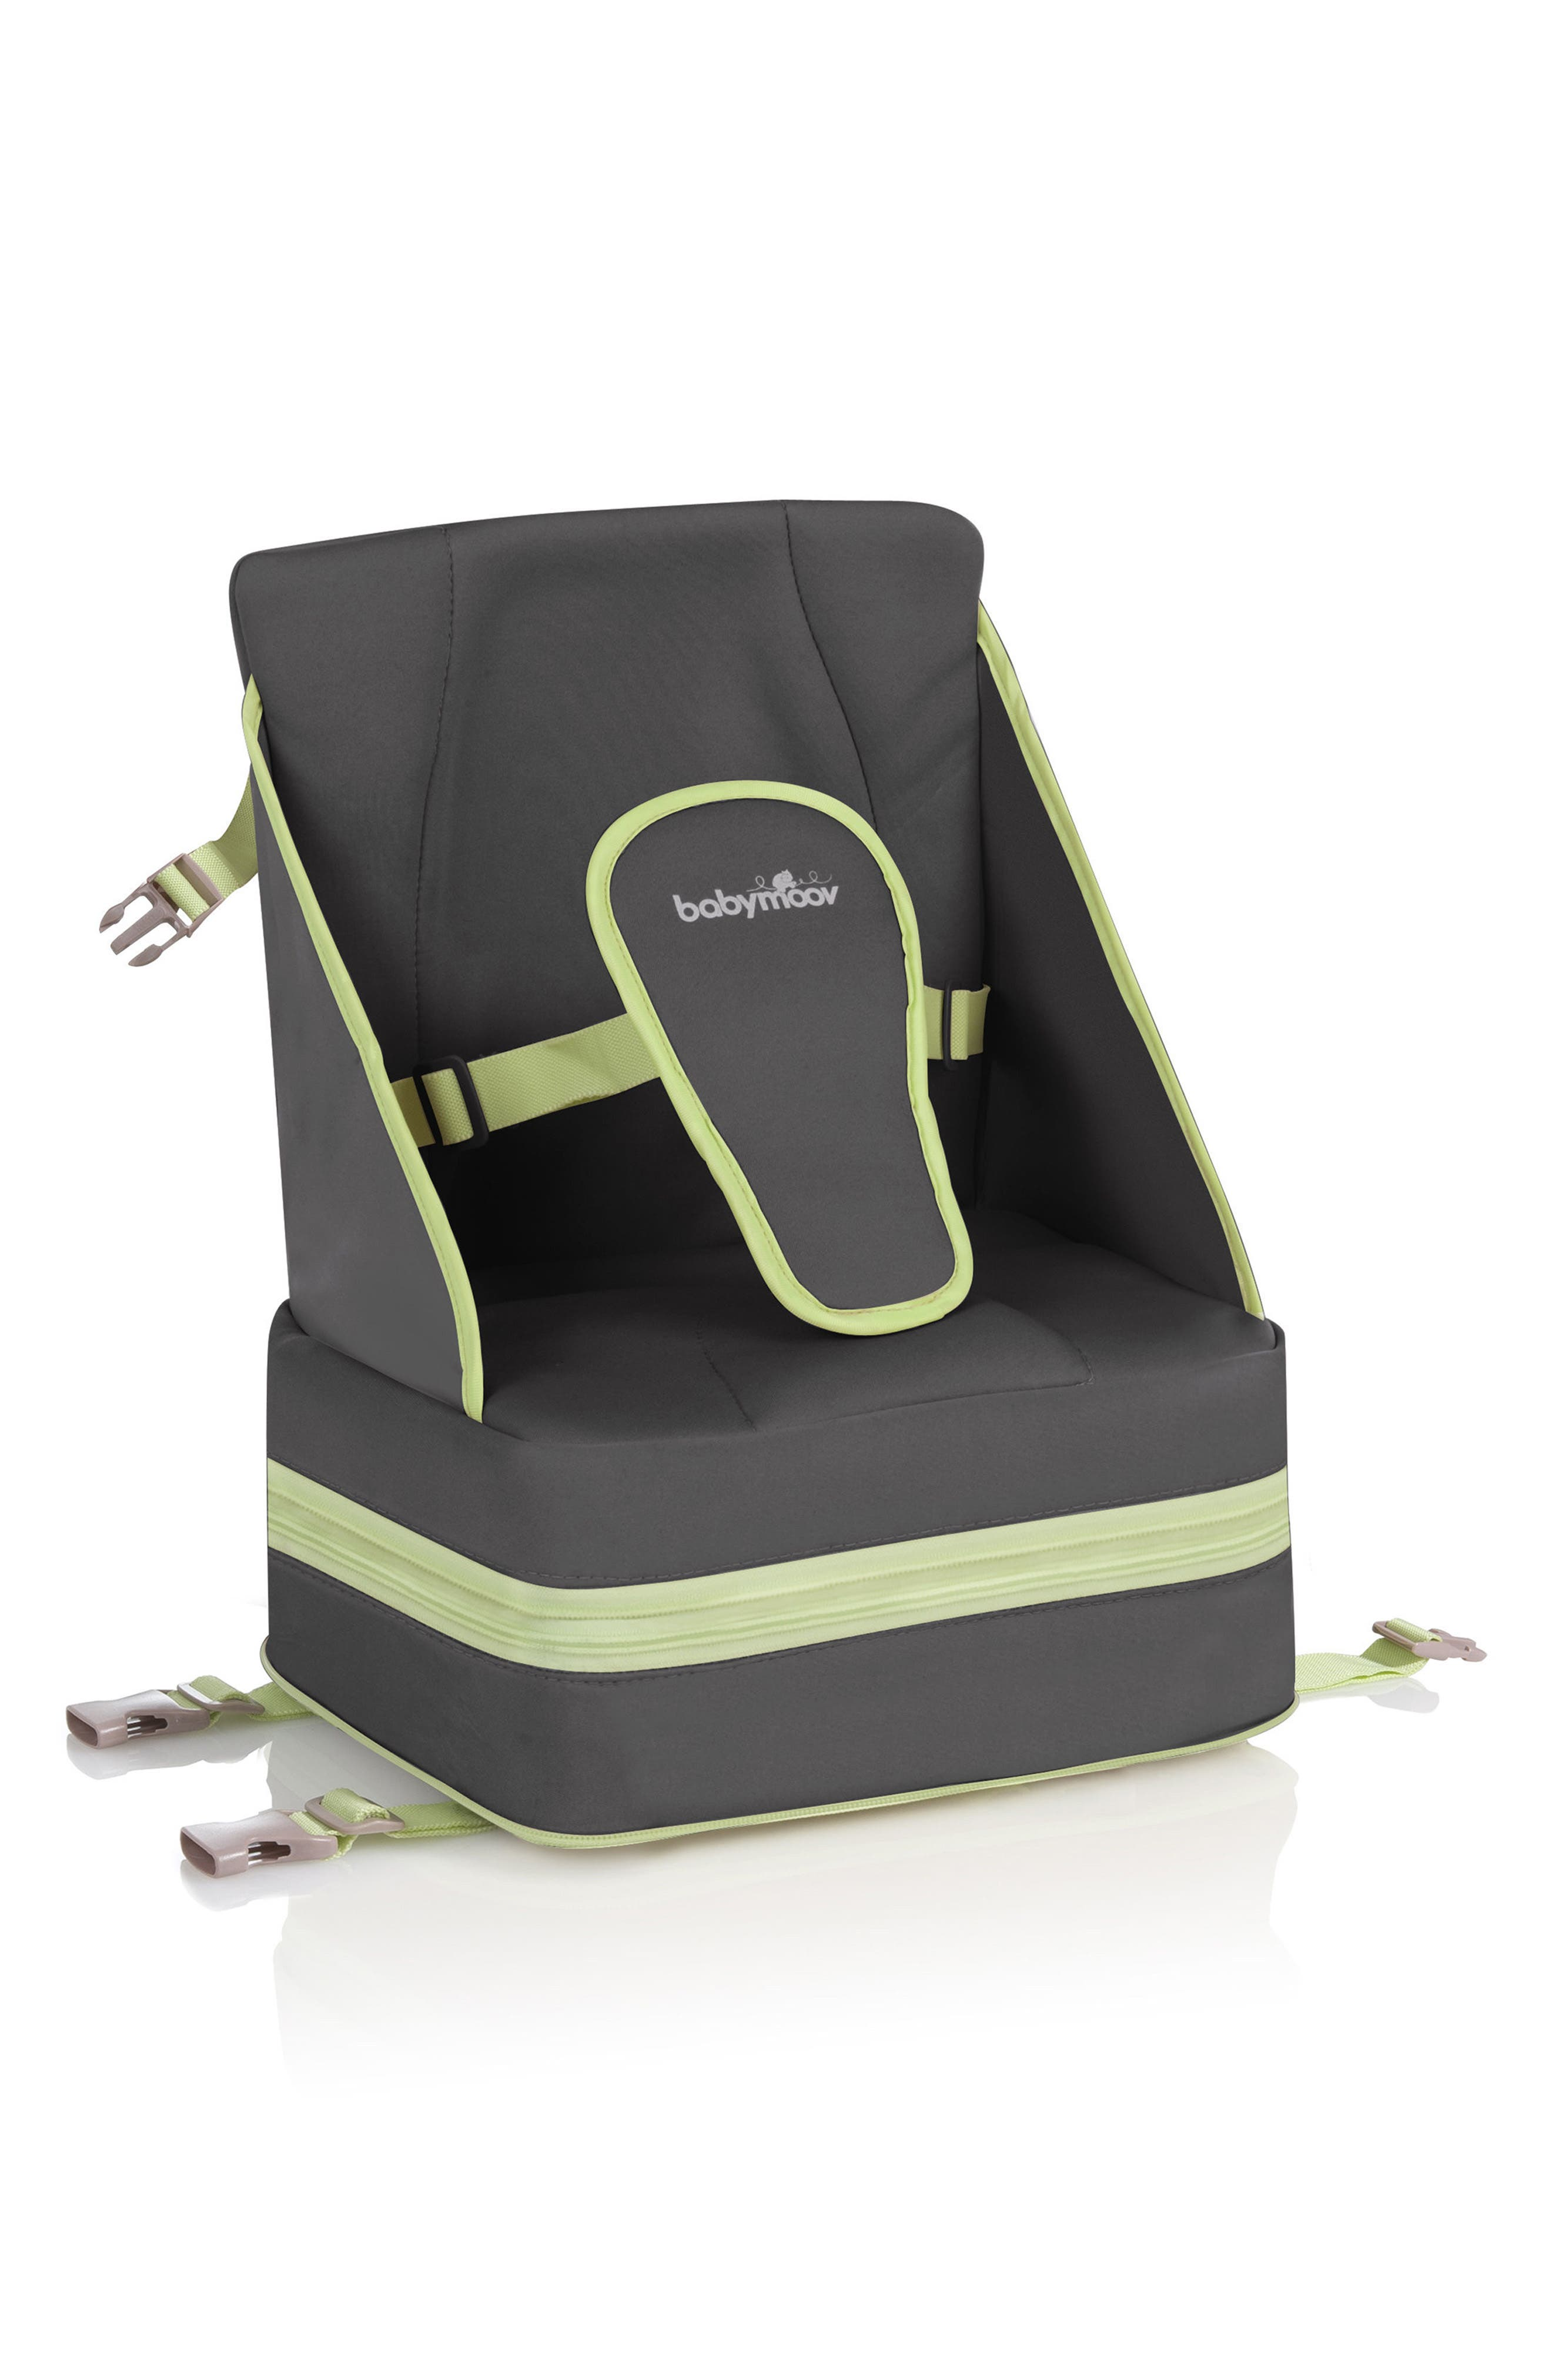 Up & Go Booster Seat,                             Main thumbnail 1, color,                             020